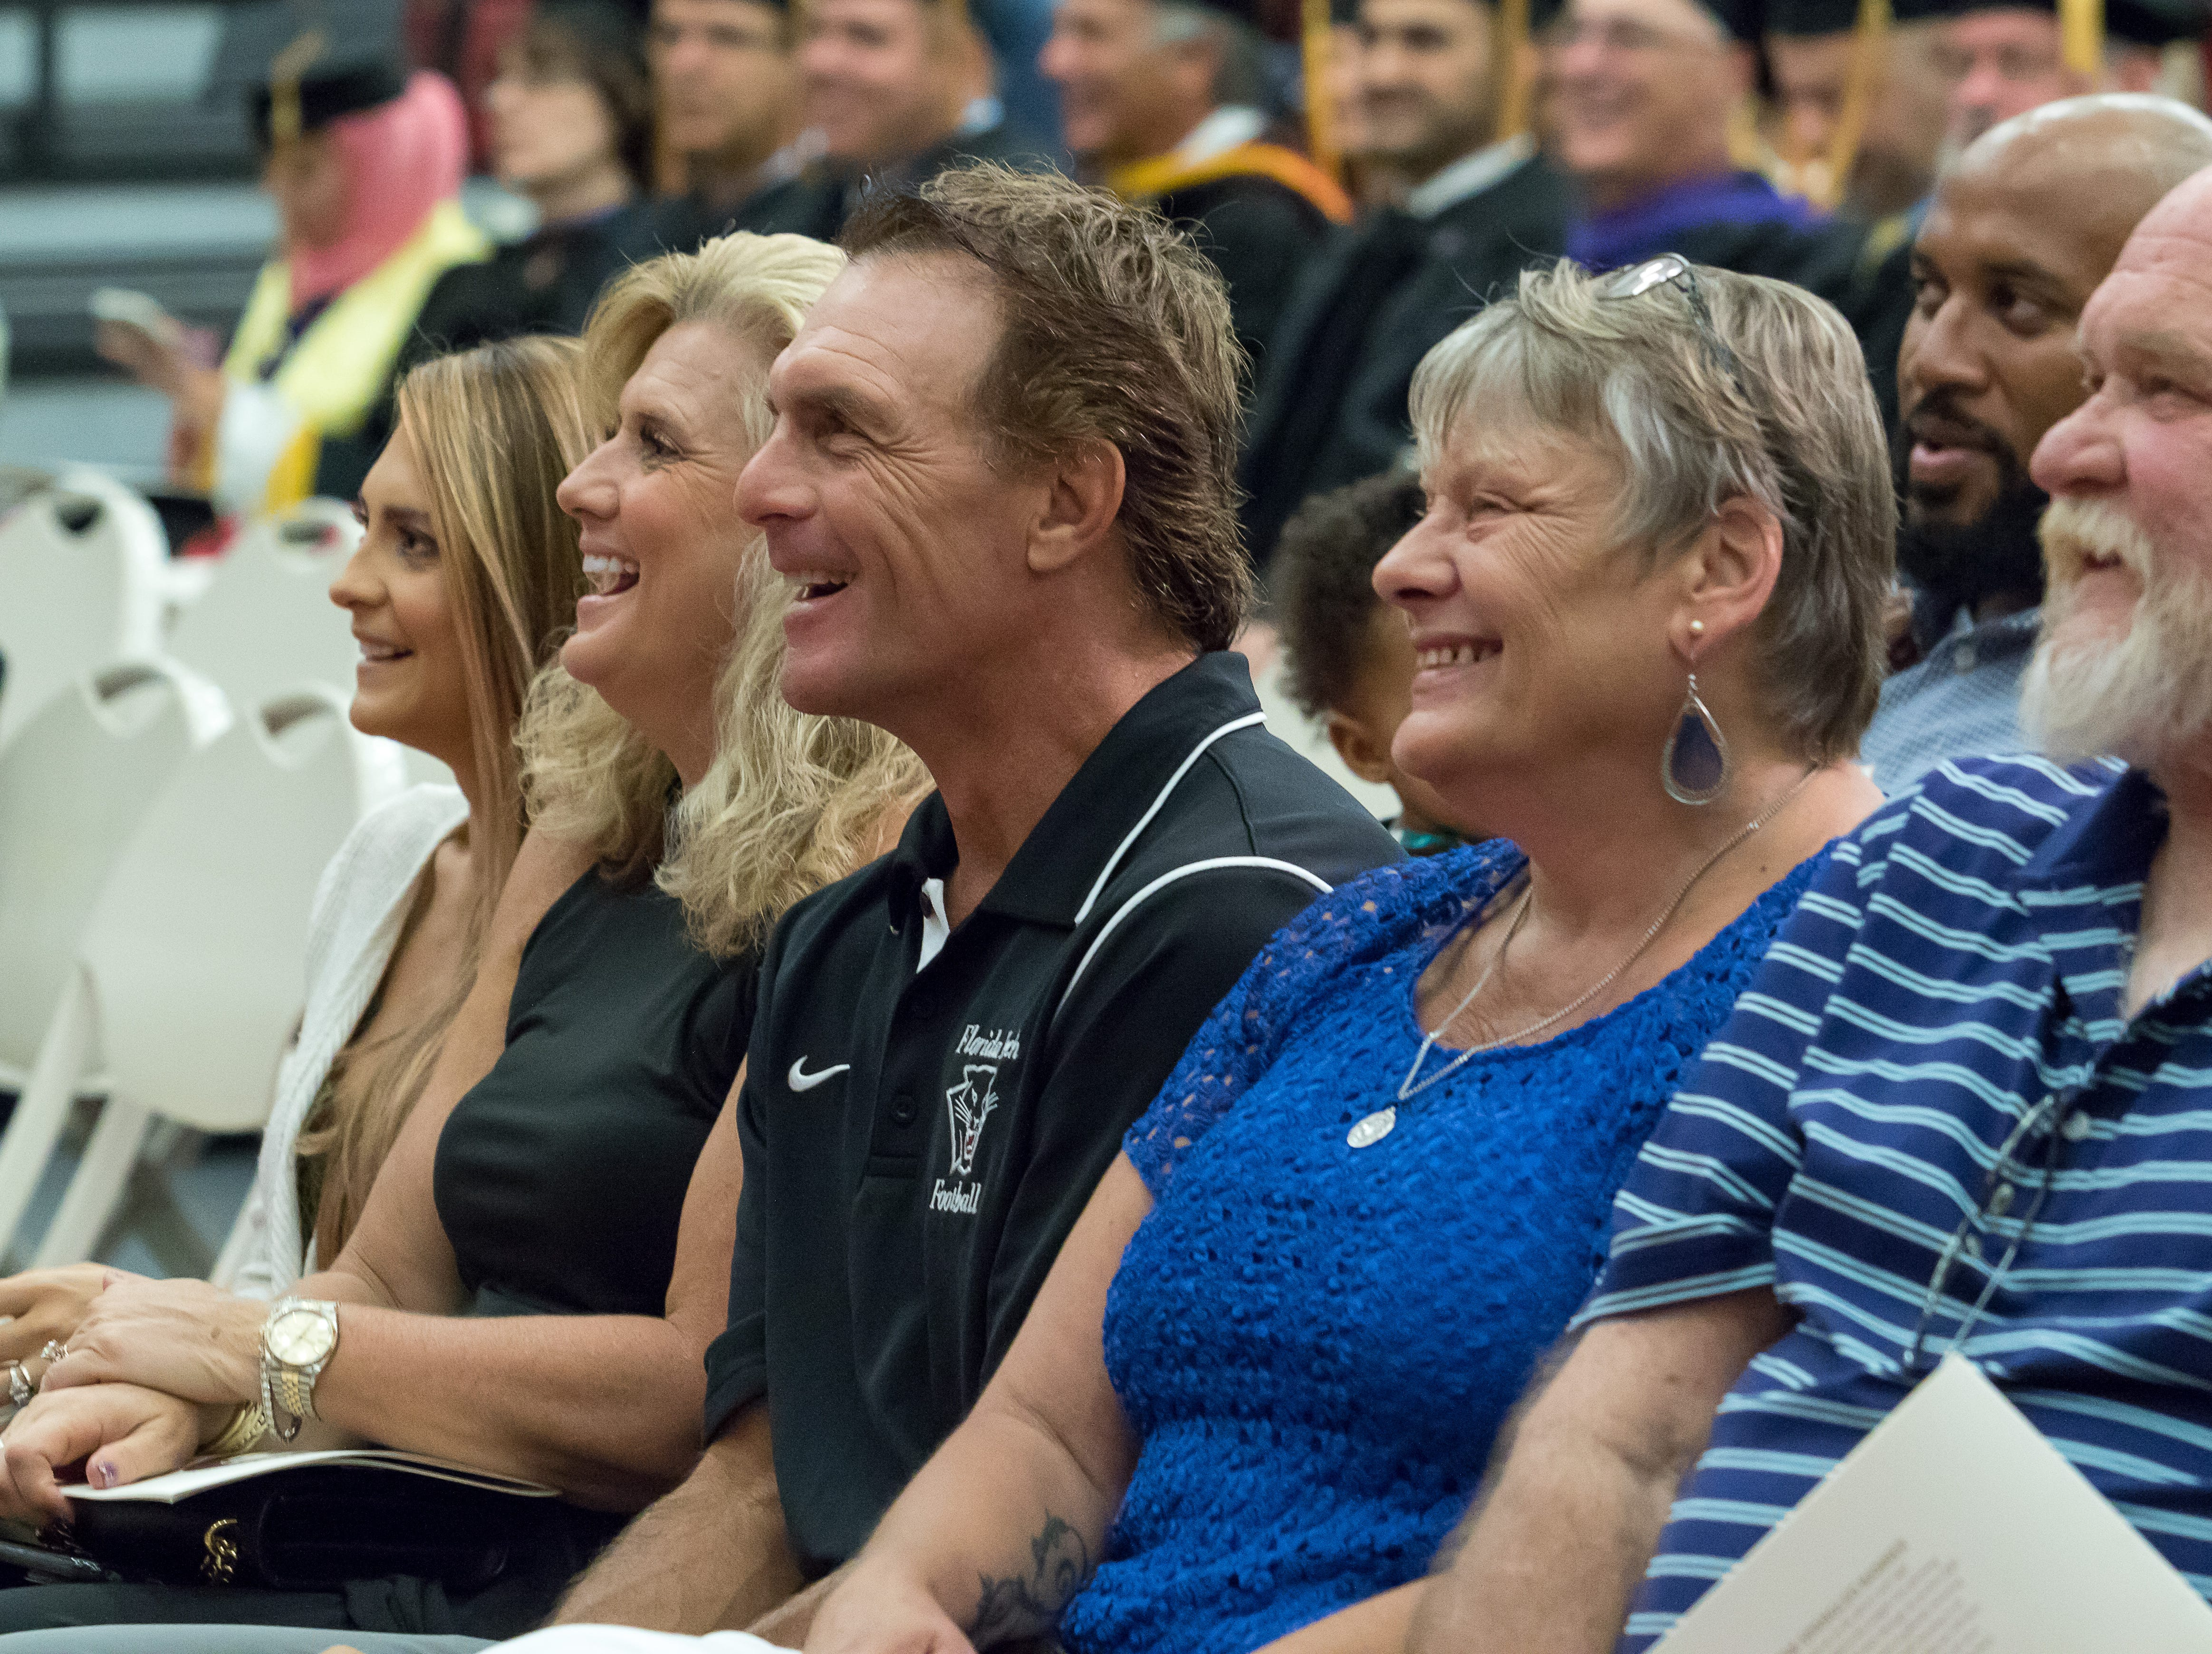 Florida Tech trustee and NFL legend Doug Flutie (center) attended the ceremony with his family to celebrate the graduation of his daughter Alexa Flutie-Sumner's husband, Ian Sumner, who graduated summa cum laude with a bachelor's degree in business administration/sport management.